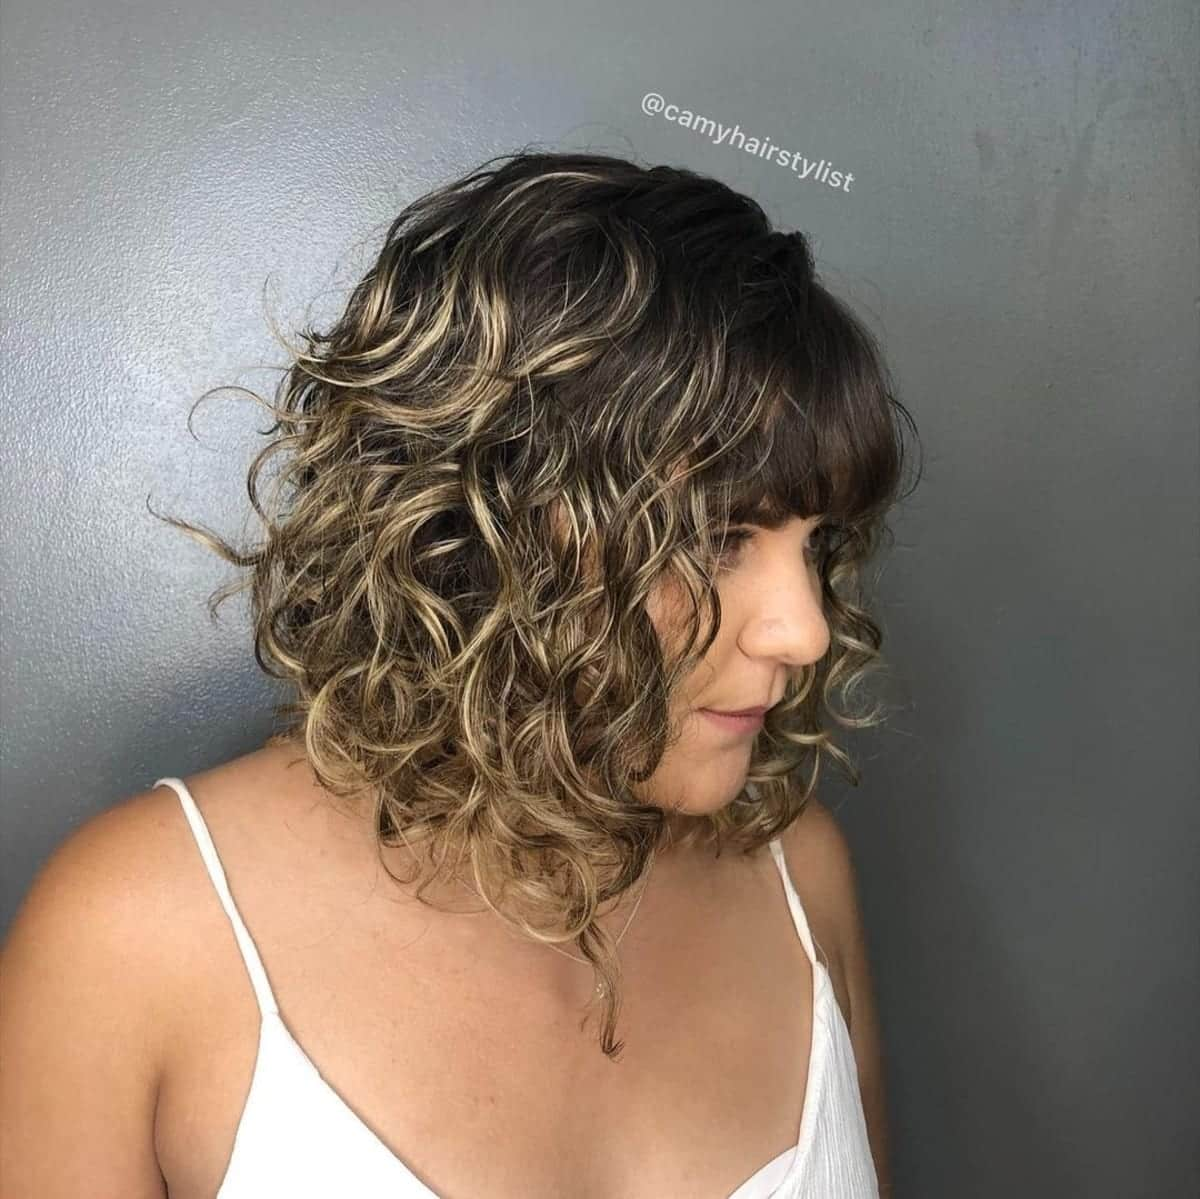 23 Best Angled Bob with Bangs Hairstyles You Gotta See